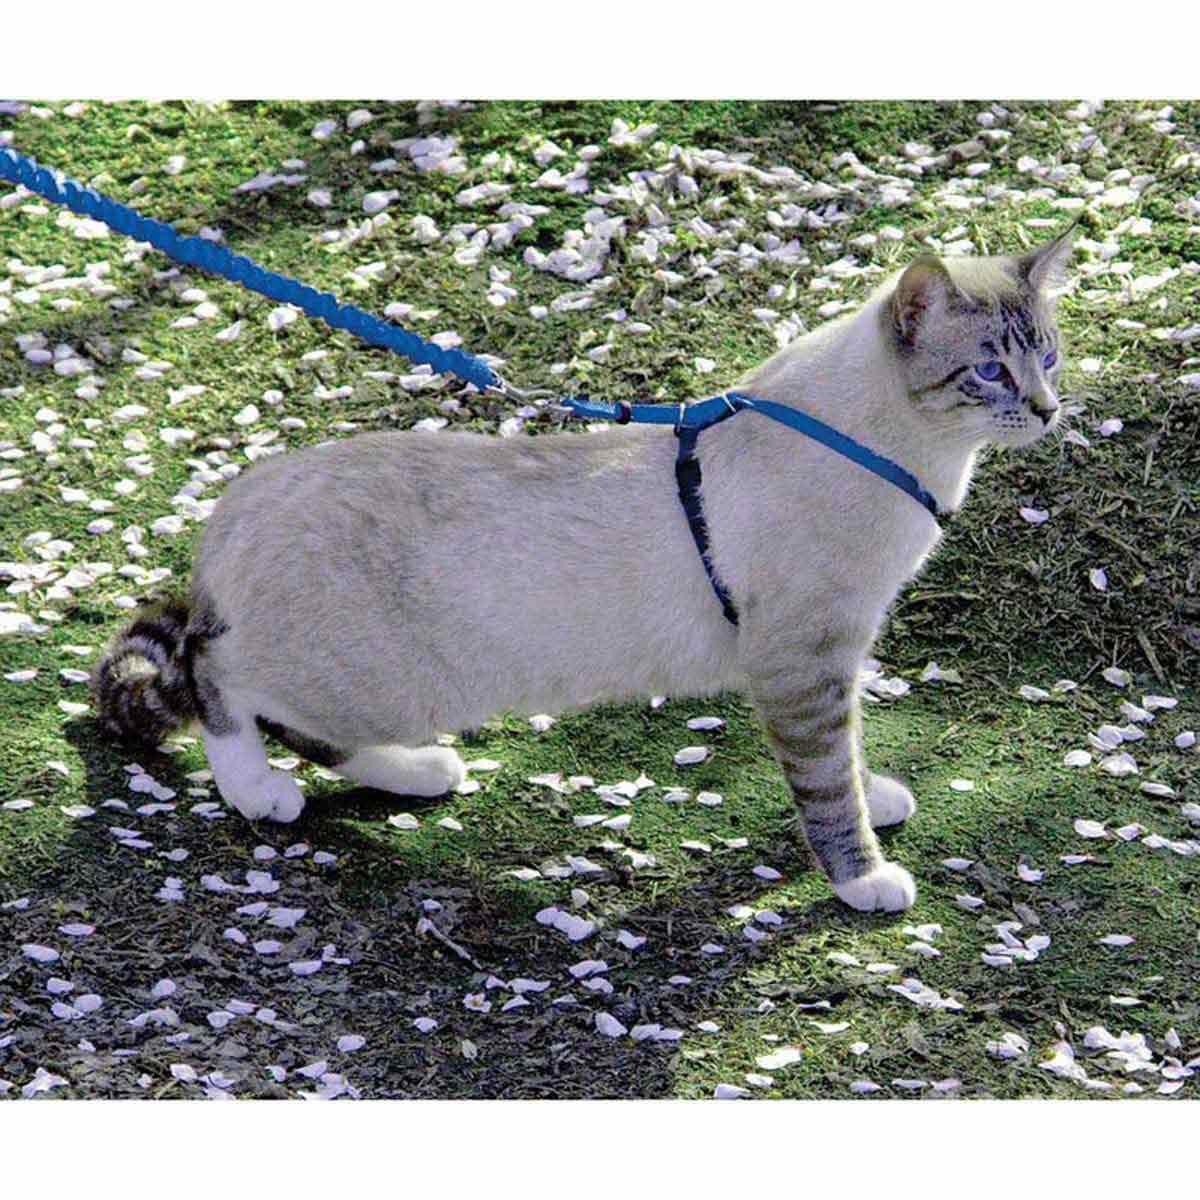 PetSafe Come With Me Kitty Large Royal Blue Harness and Bungee Leash